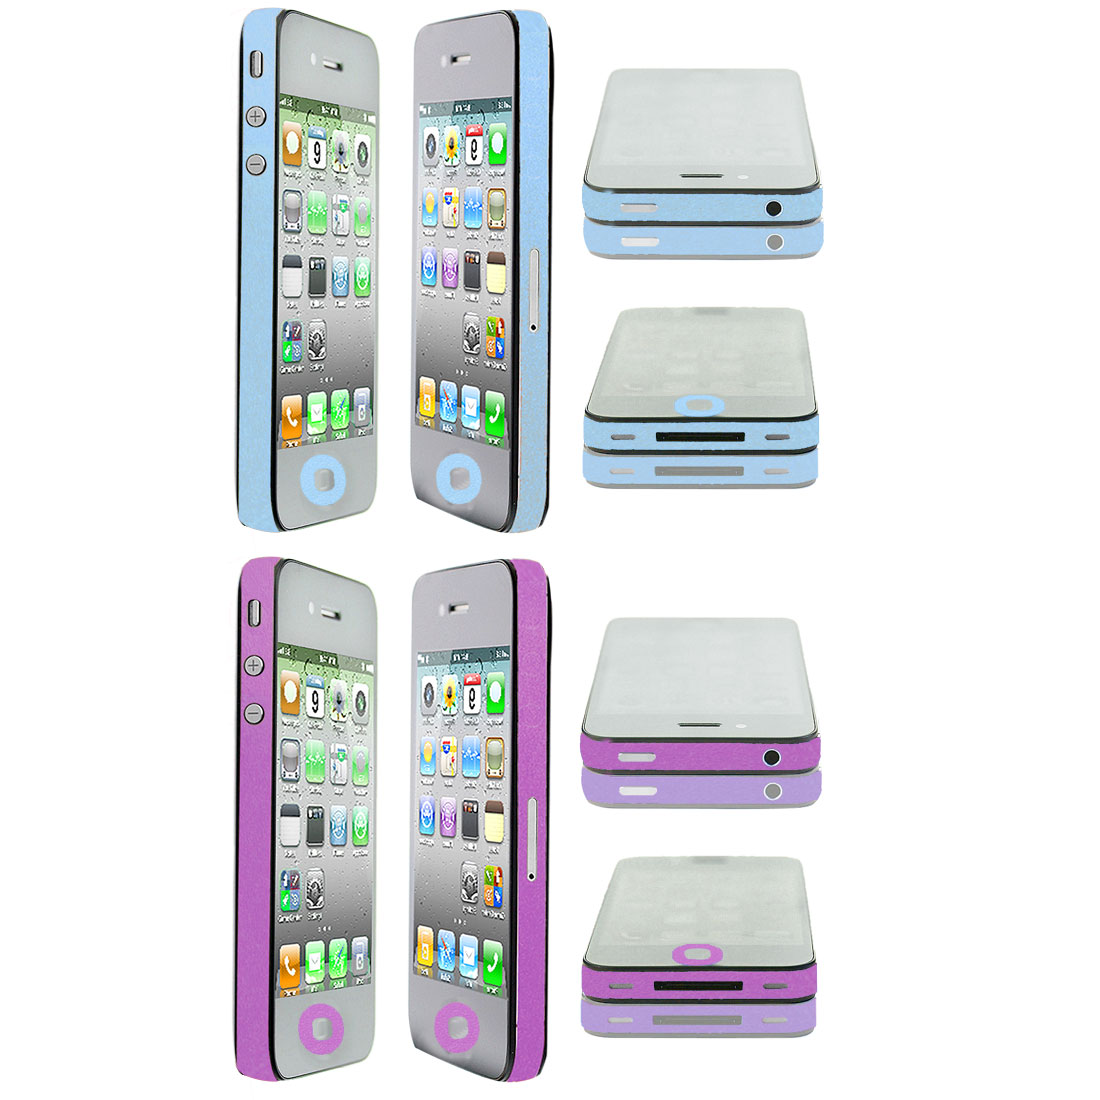 Glitter Purple Sky Blue Edge Wrap Decal Sticker 2 Pcs for iPhone 4 4G 4S 4GS